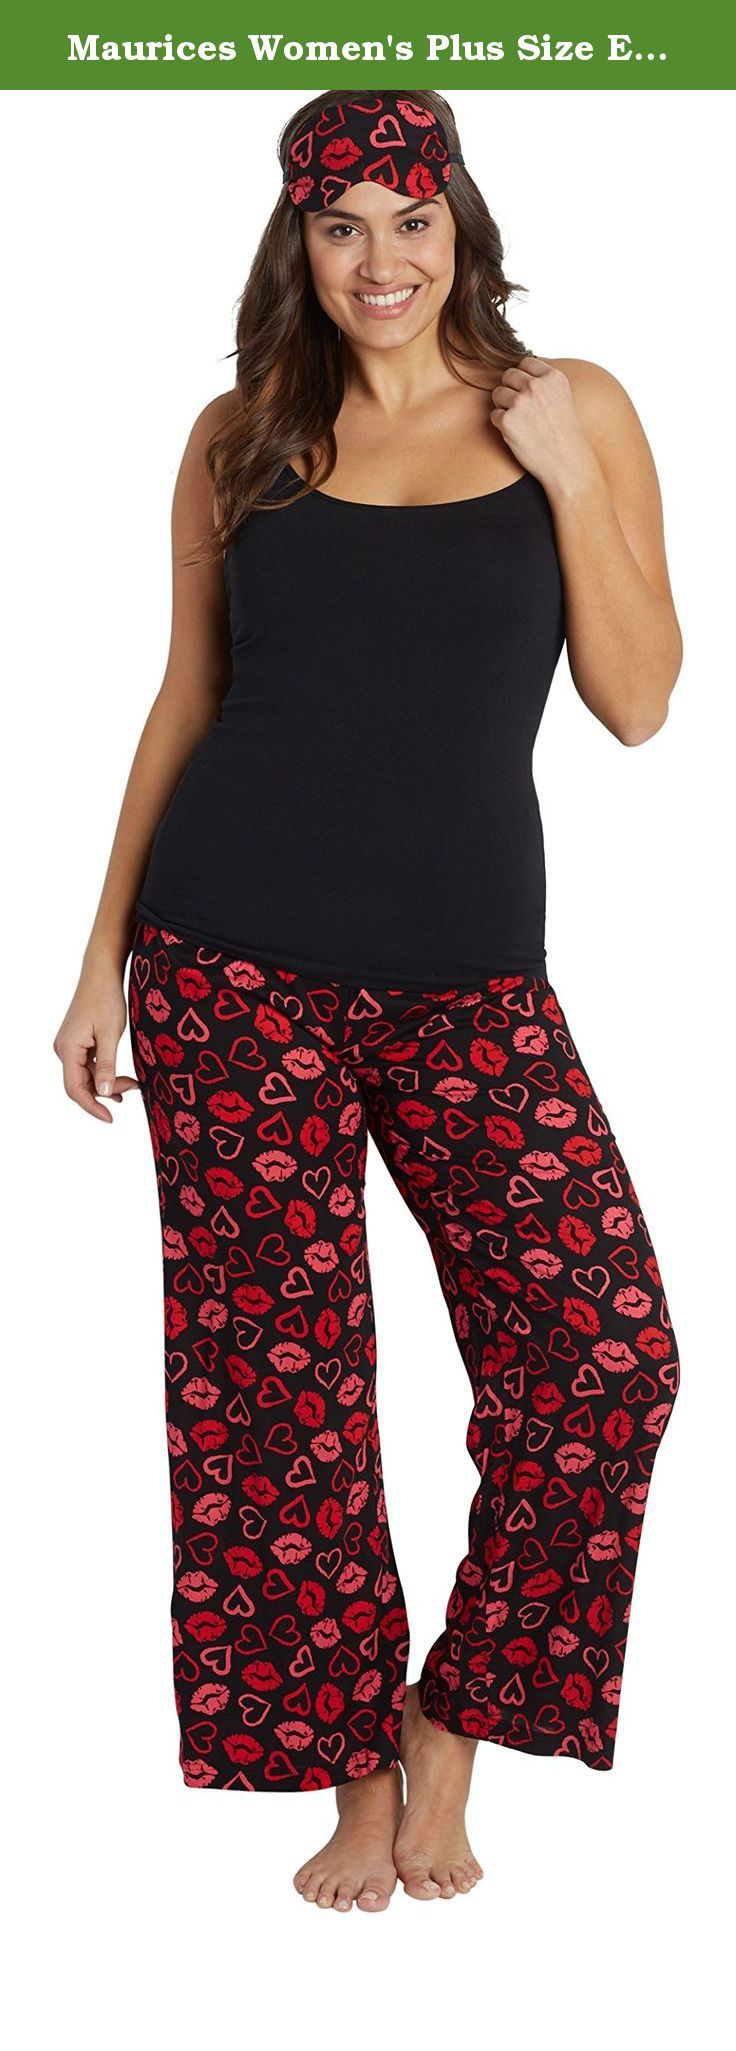 Maurices Women's Plus Size Eye Mask And Lightweight Sleep Pant Set In Lip Print 0 Black Combo. Plus size eye mask and lightweight sleep pant set in lip print. Fabric and care: imported 100% rayon machine wash.